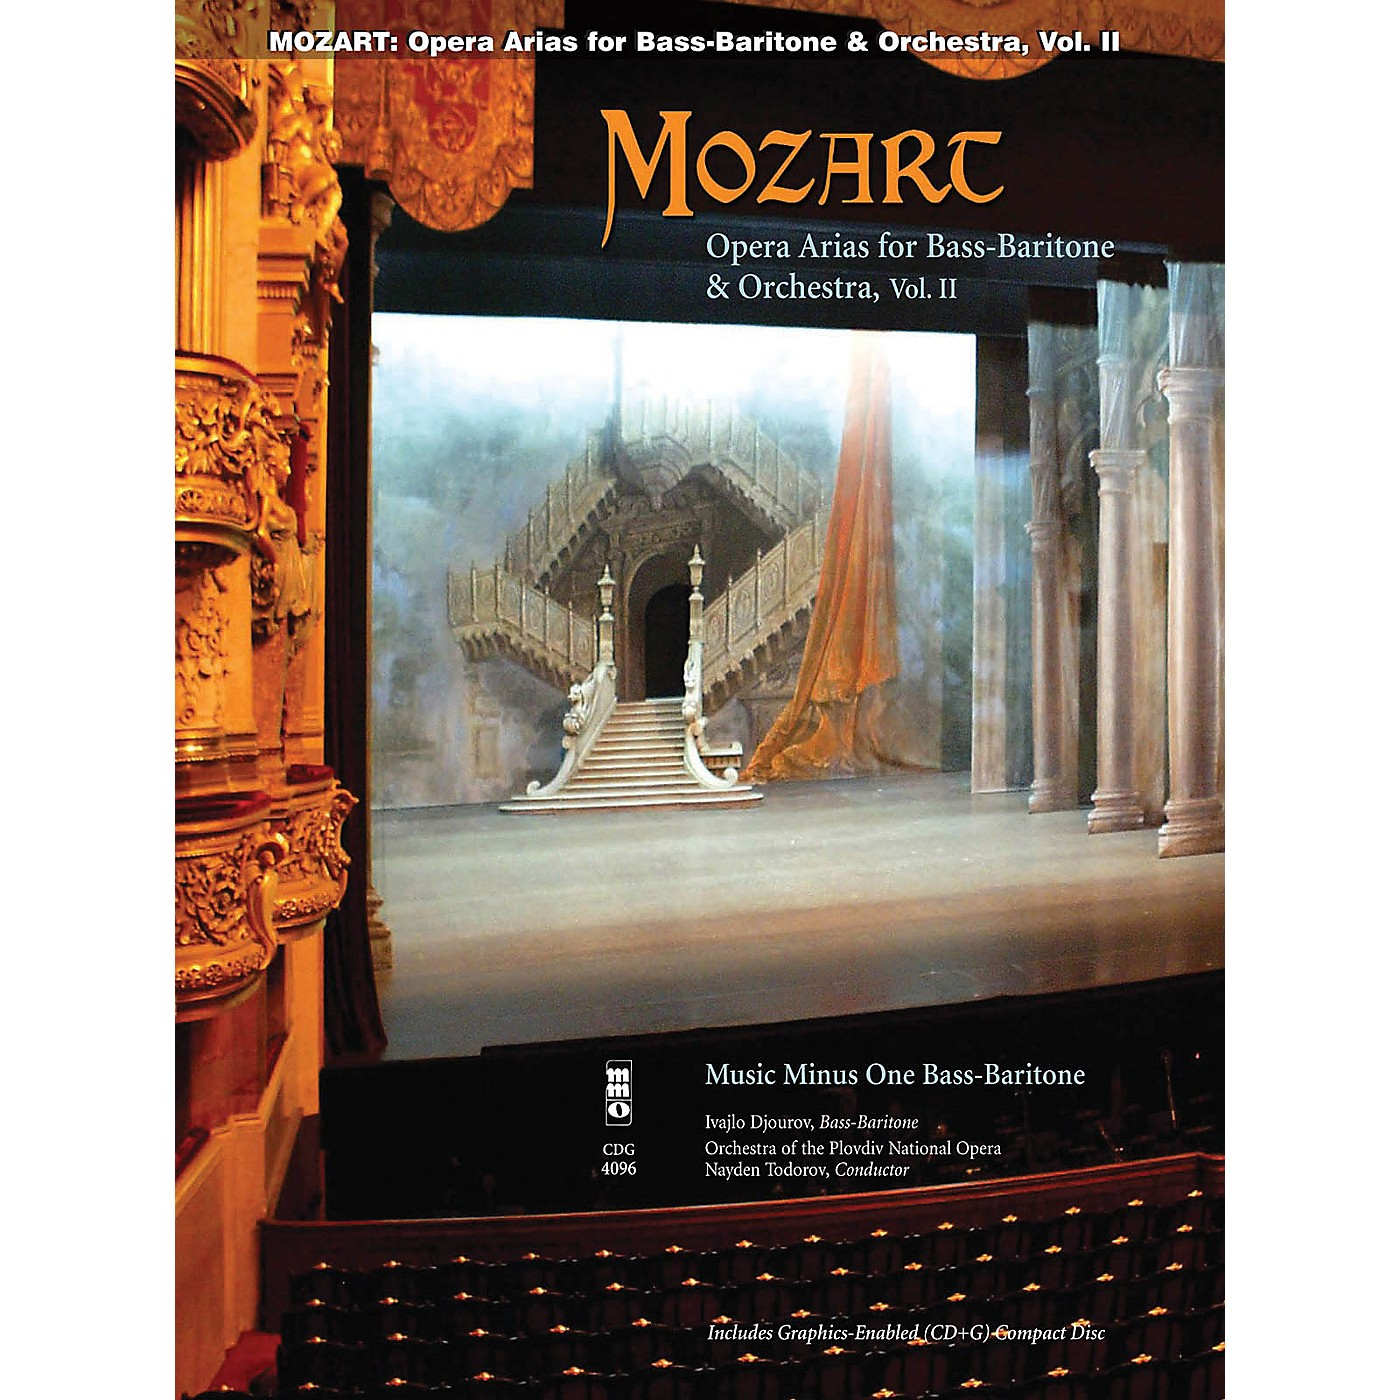 Music Minus One Mozart Opera Arias for Bass Baritone and Orchestra - Vol. II Music Minus One Softcover with CD by Mozart thumbnail